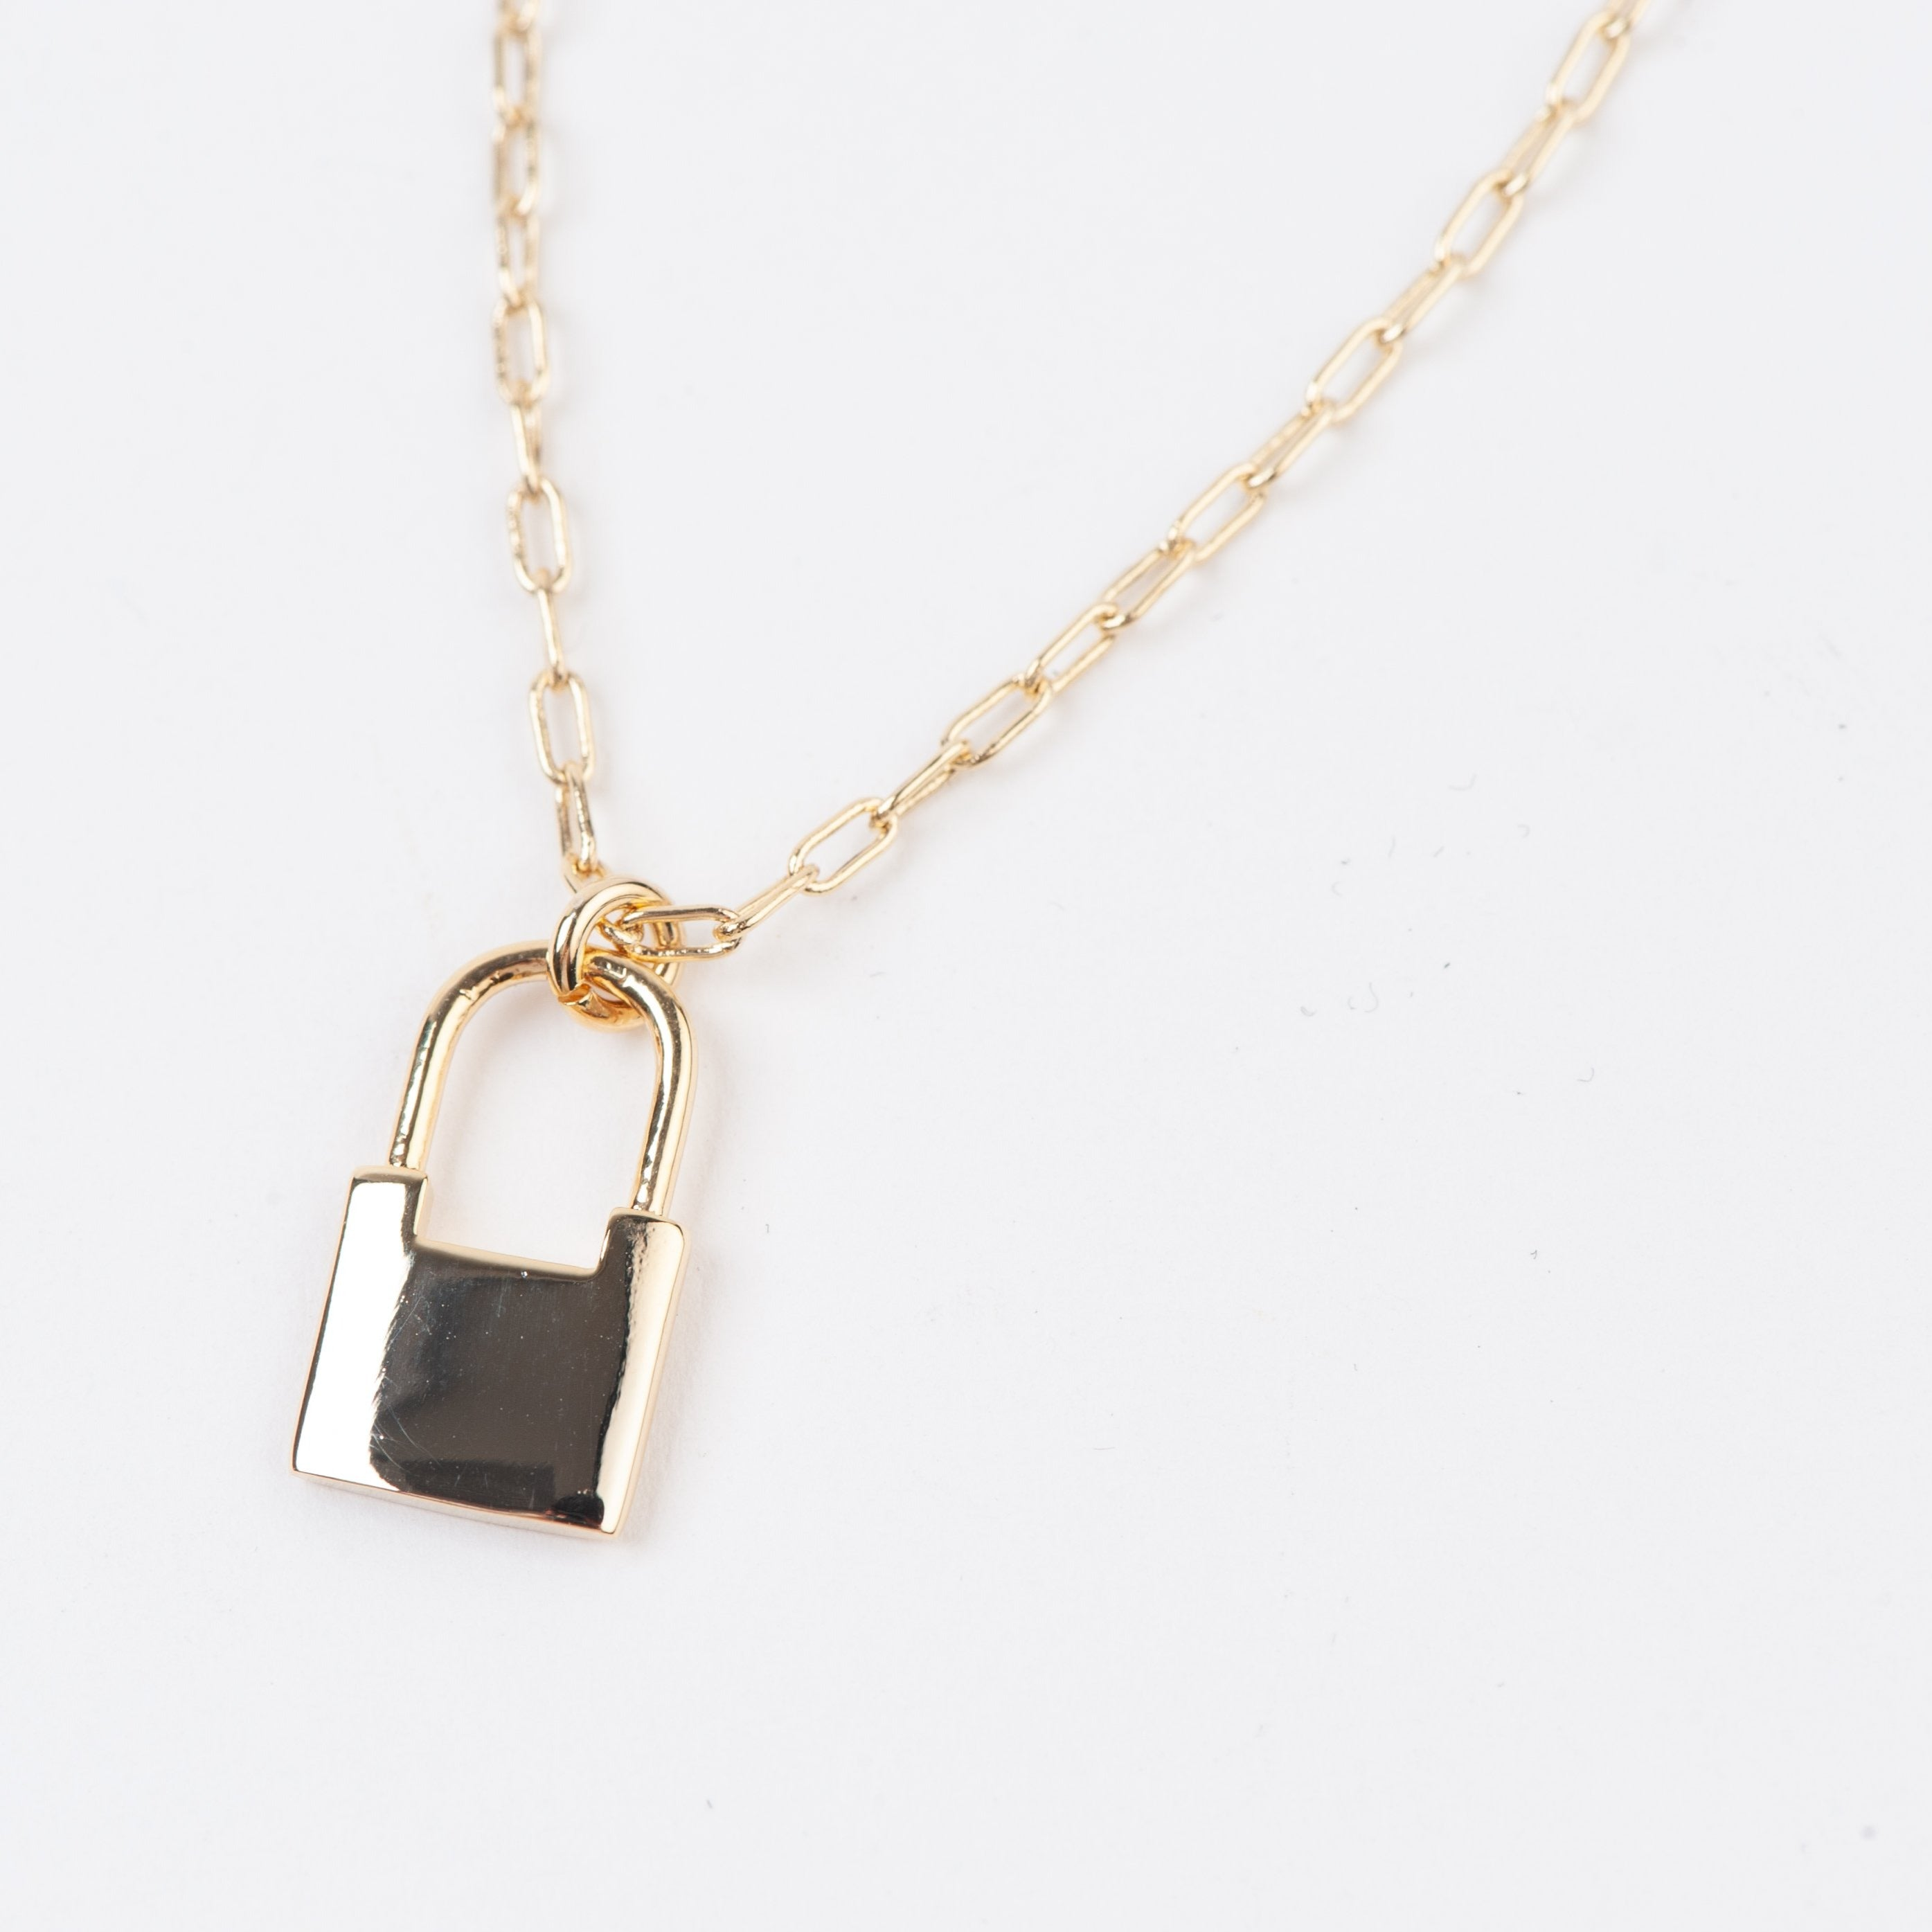 LOCK PENDANT NECKLACE | GOLD